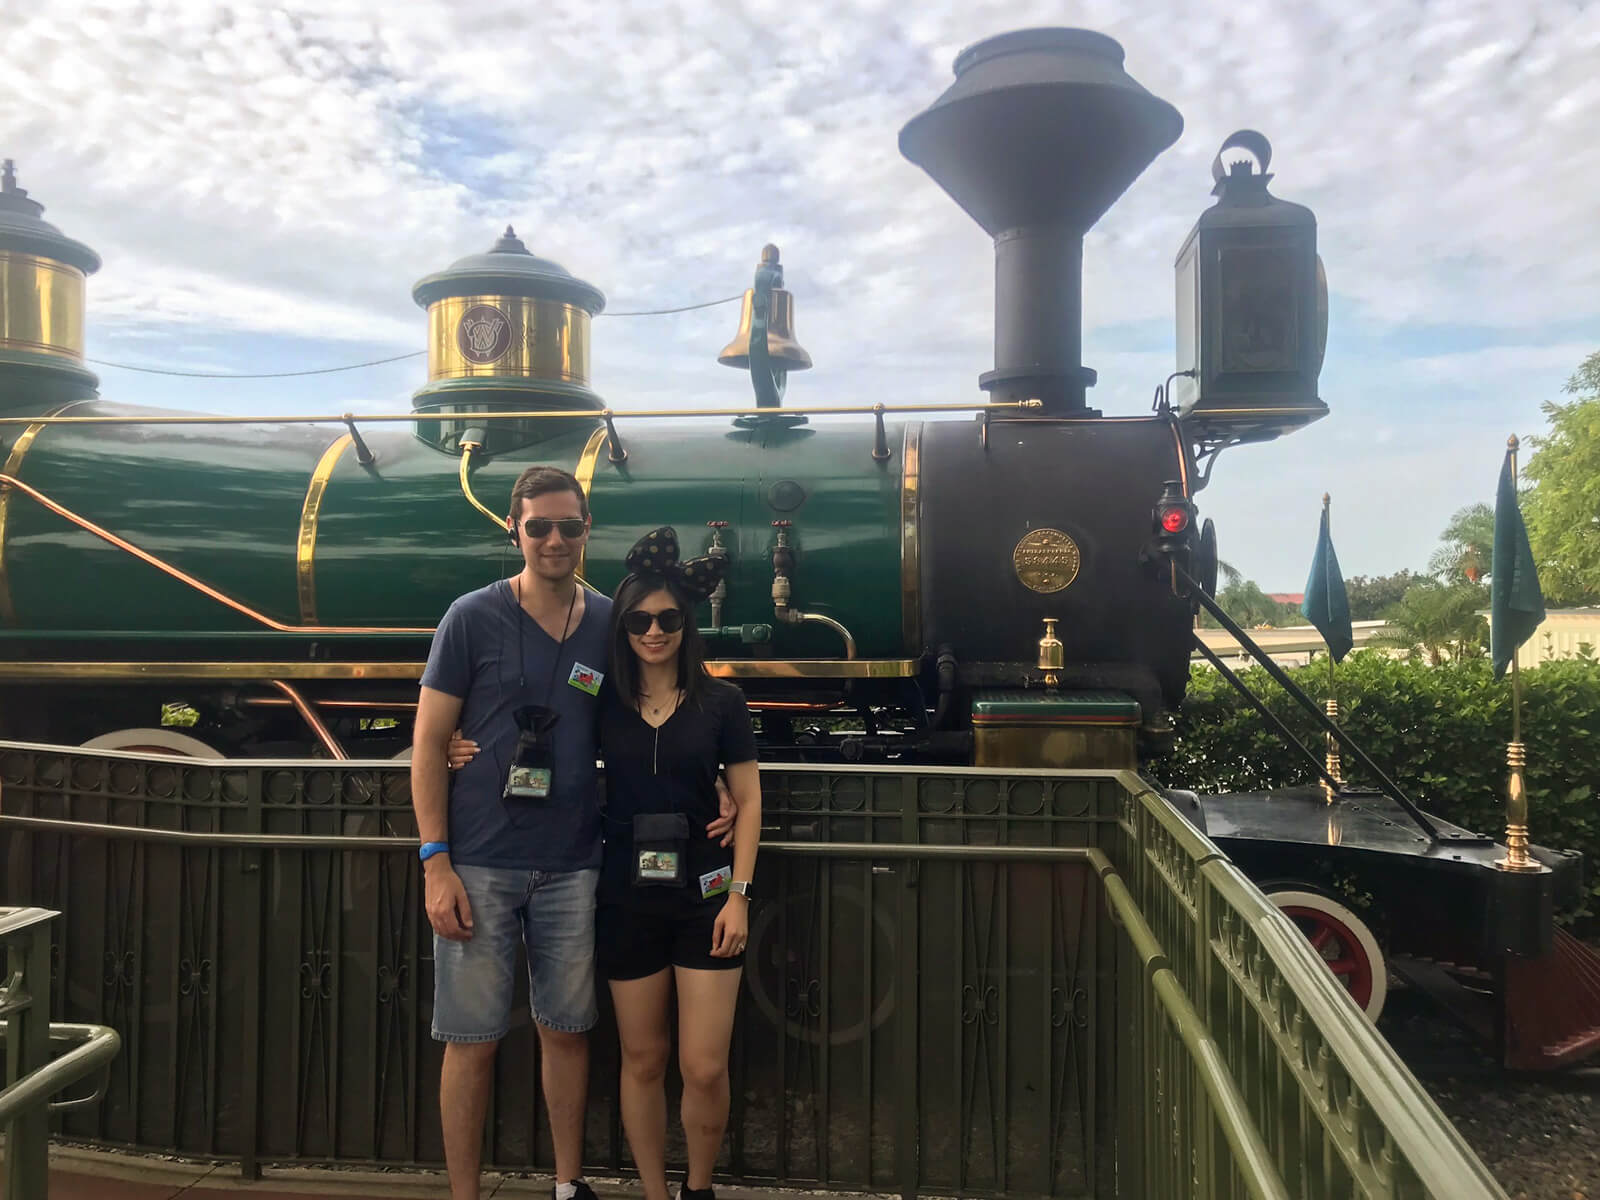 A man and woman standing in front of a green steam train. They are wearing sunglasses and have their arms around each other.